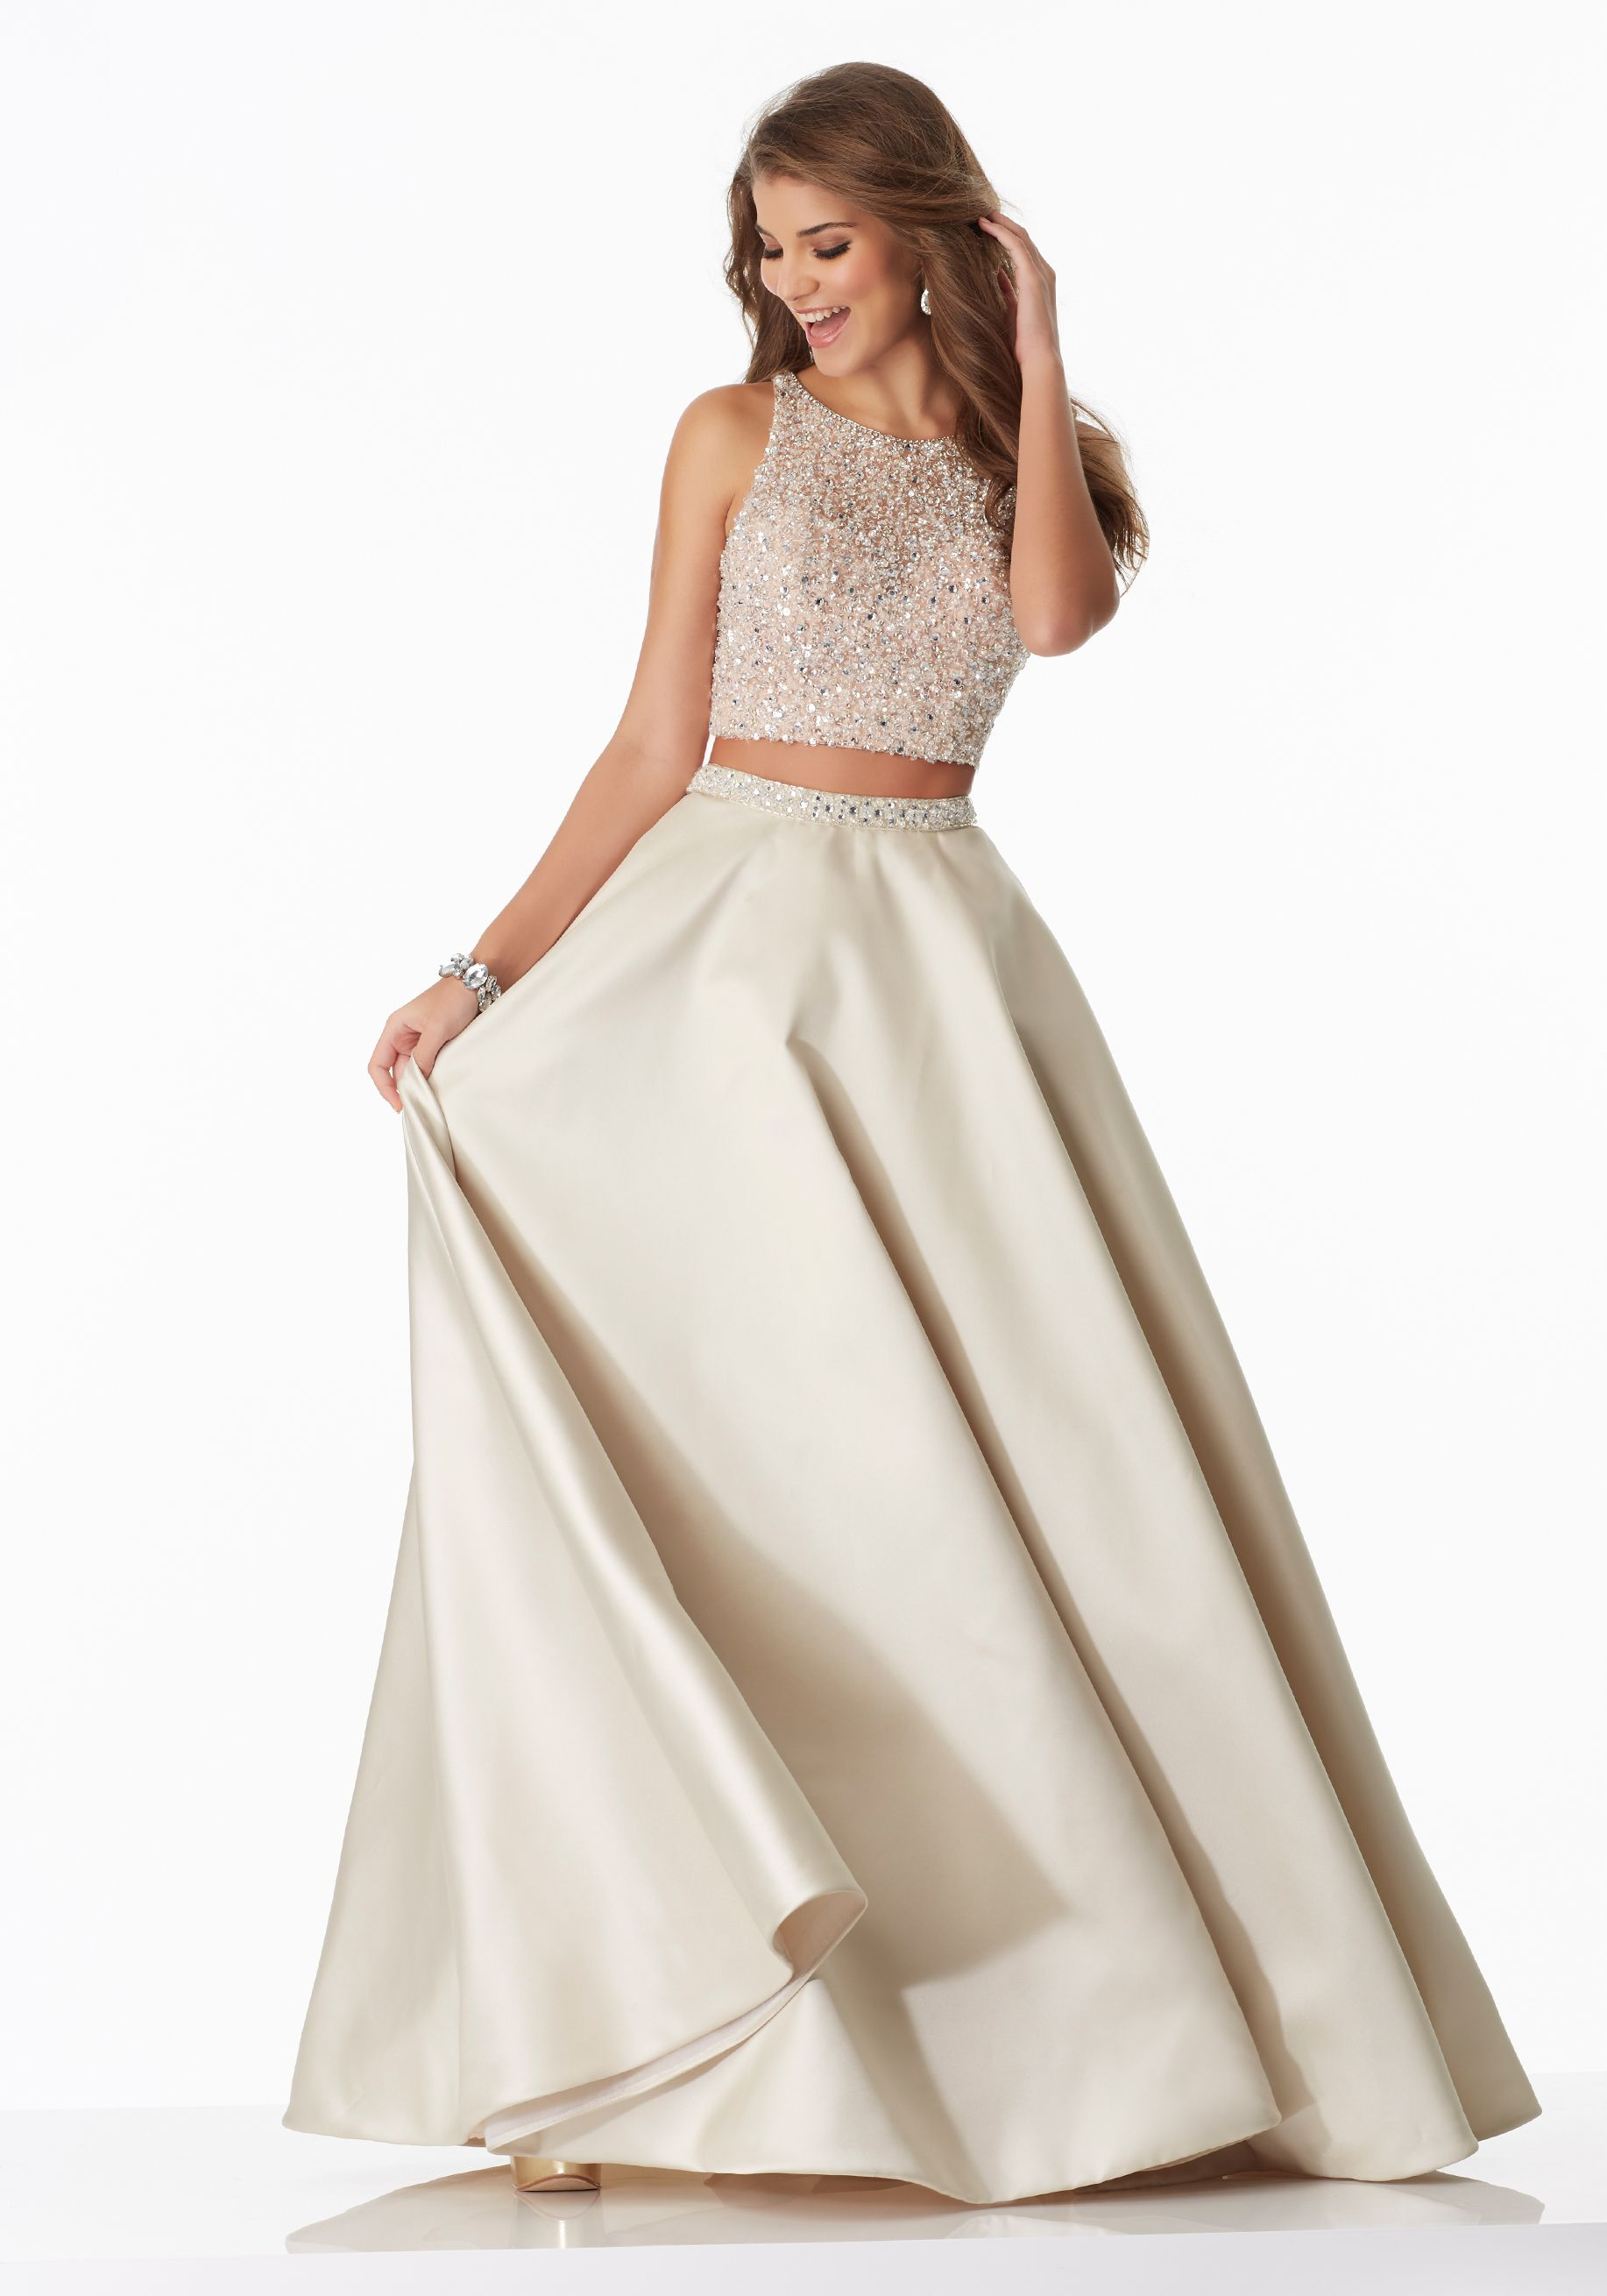 a5d93754621 Prom Dresses by Morilee designed by Madeline Gardner. Elegant and gorgeous  Two-Piece Prom Dress with A-Line Larissa Satin Skirt and Fully Beaded Net  Top.